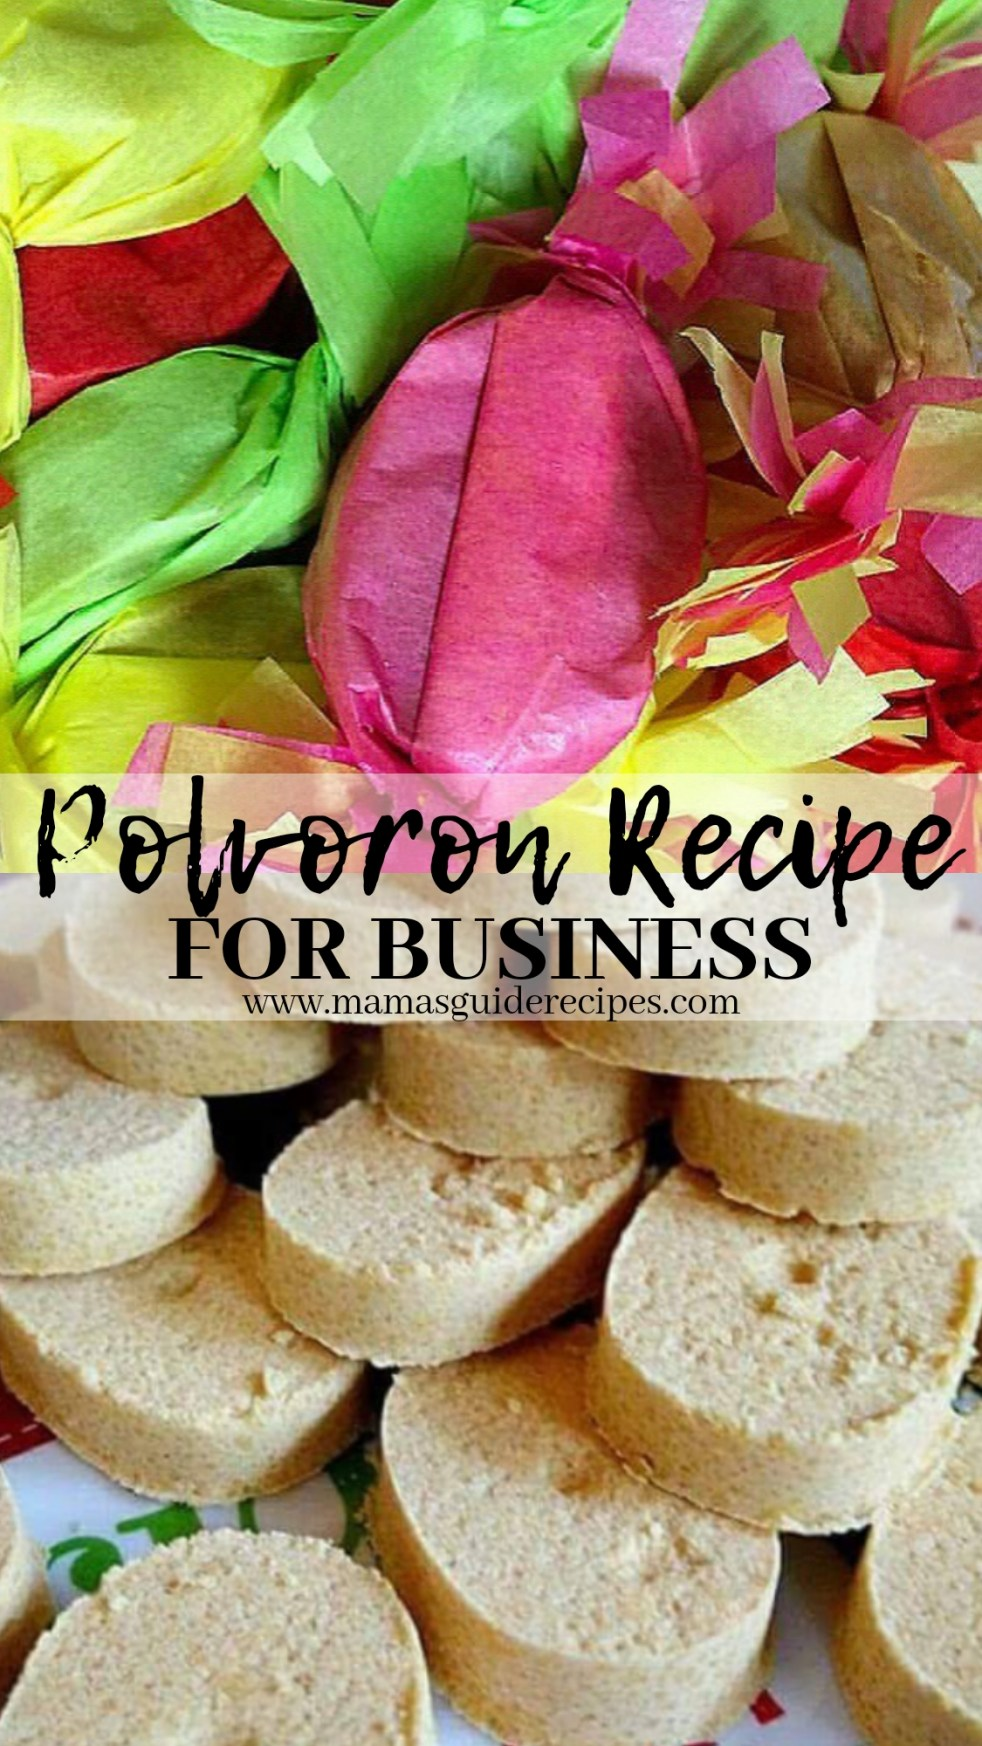 HOW TO MAKE POLVORON FOR BUSINESS